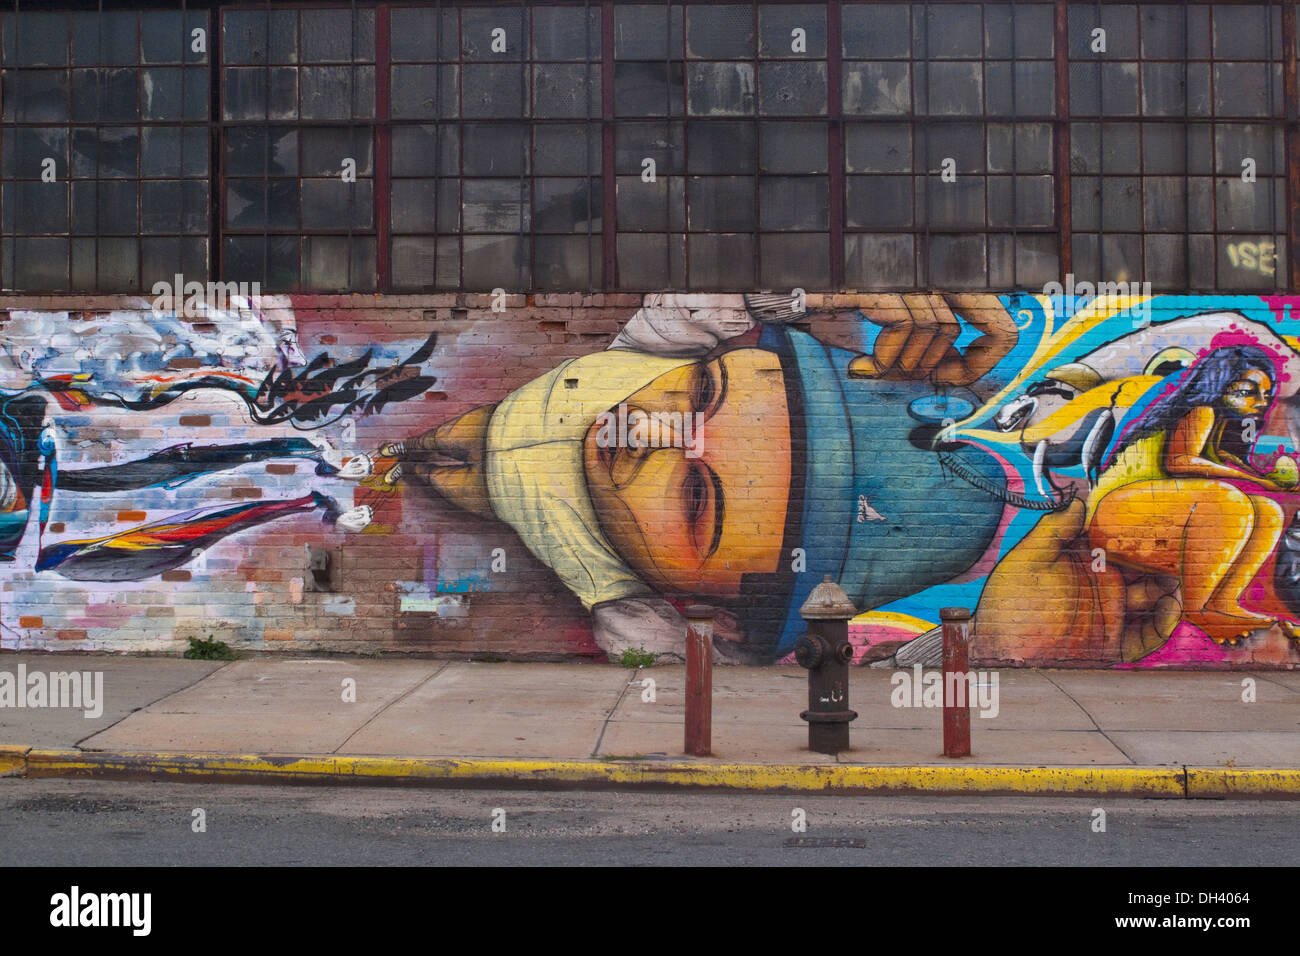 20 July 2010 -Brooklyn New York, Painted Mural on an industrial building in Greenpoint - Stock Image